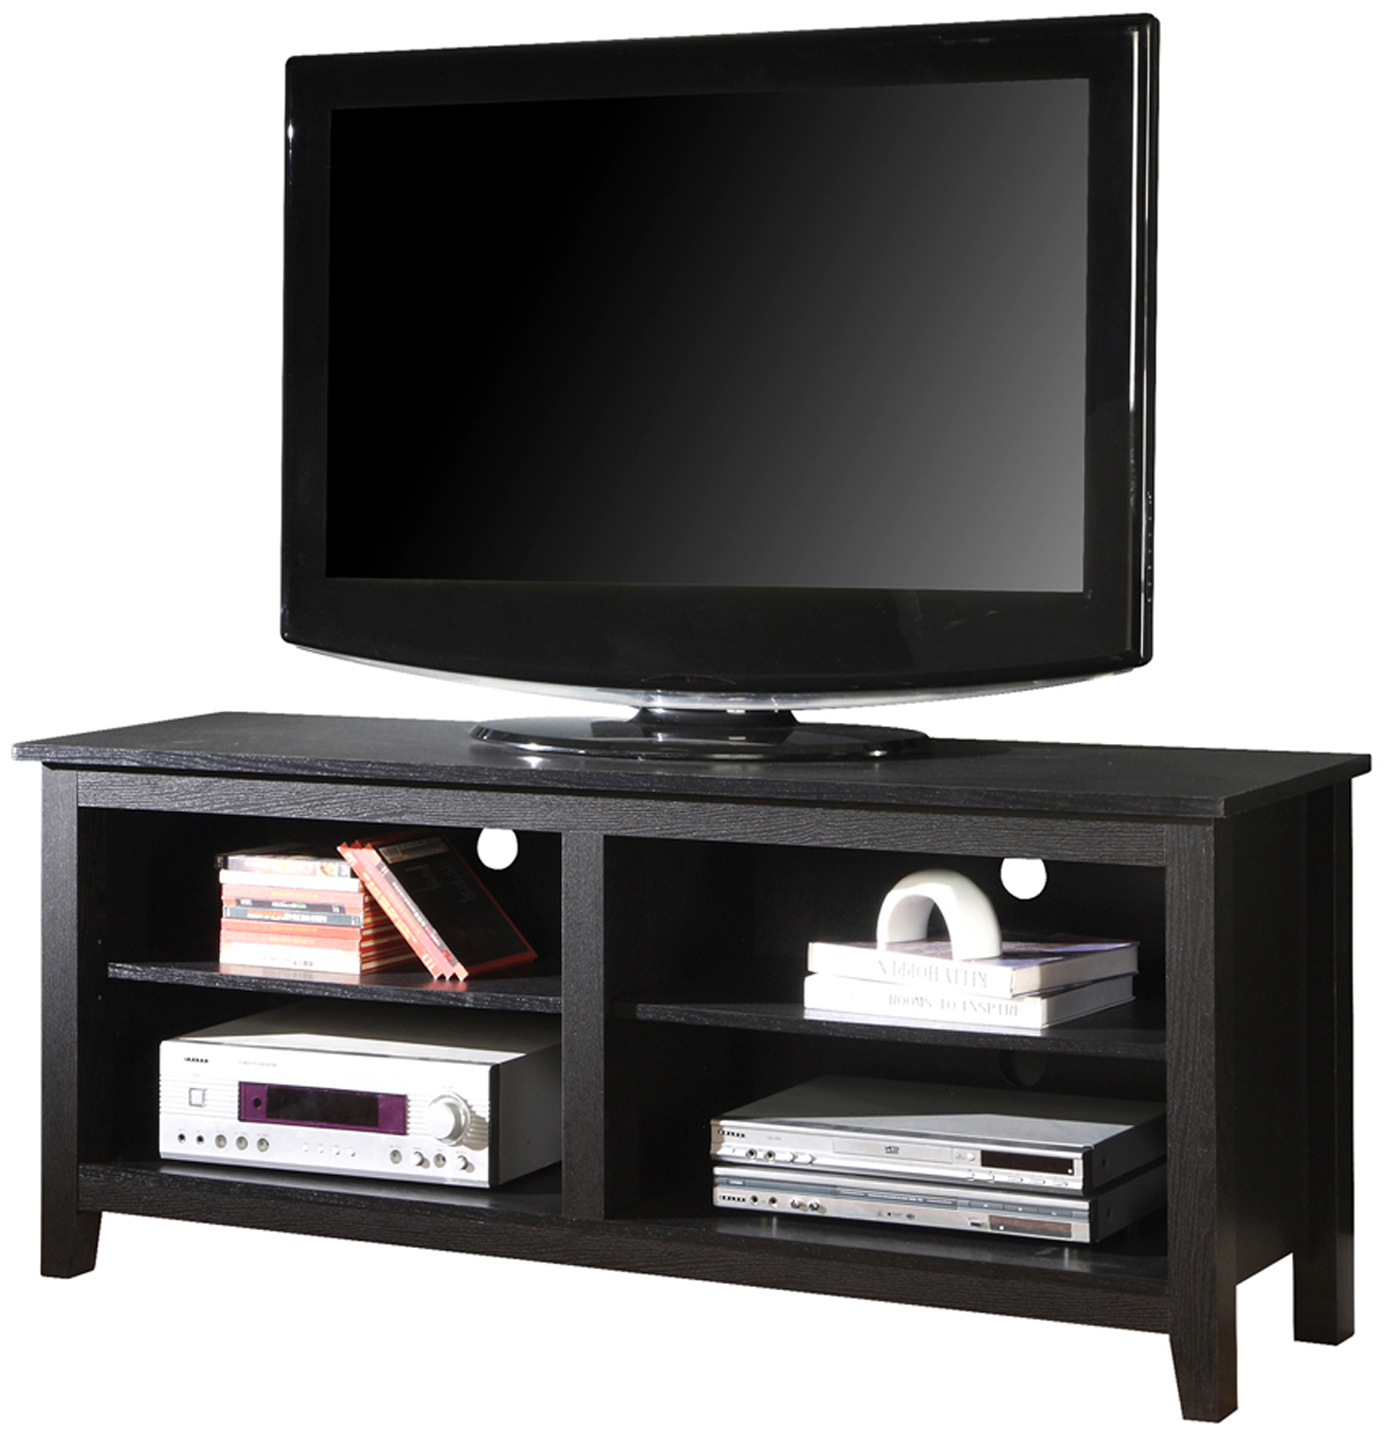 58 inch open shelf wood tv stand in tv stands. Black Bedroom Furniture Sets. Home Design Ideas